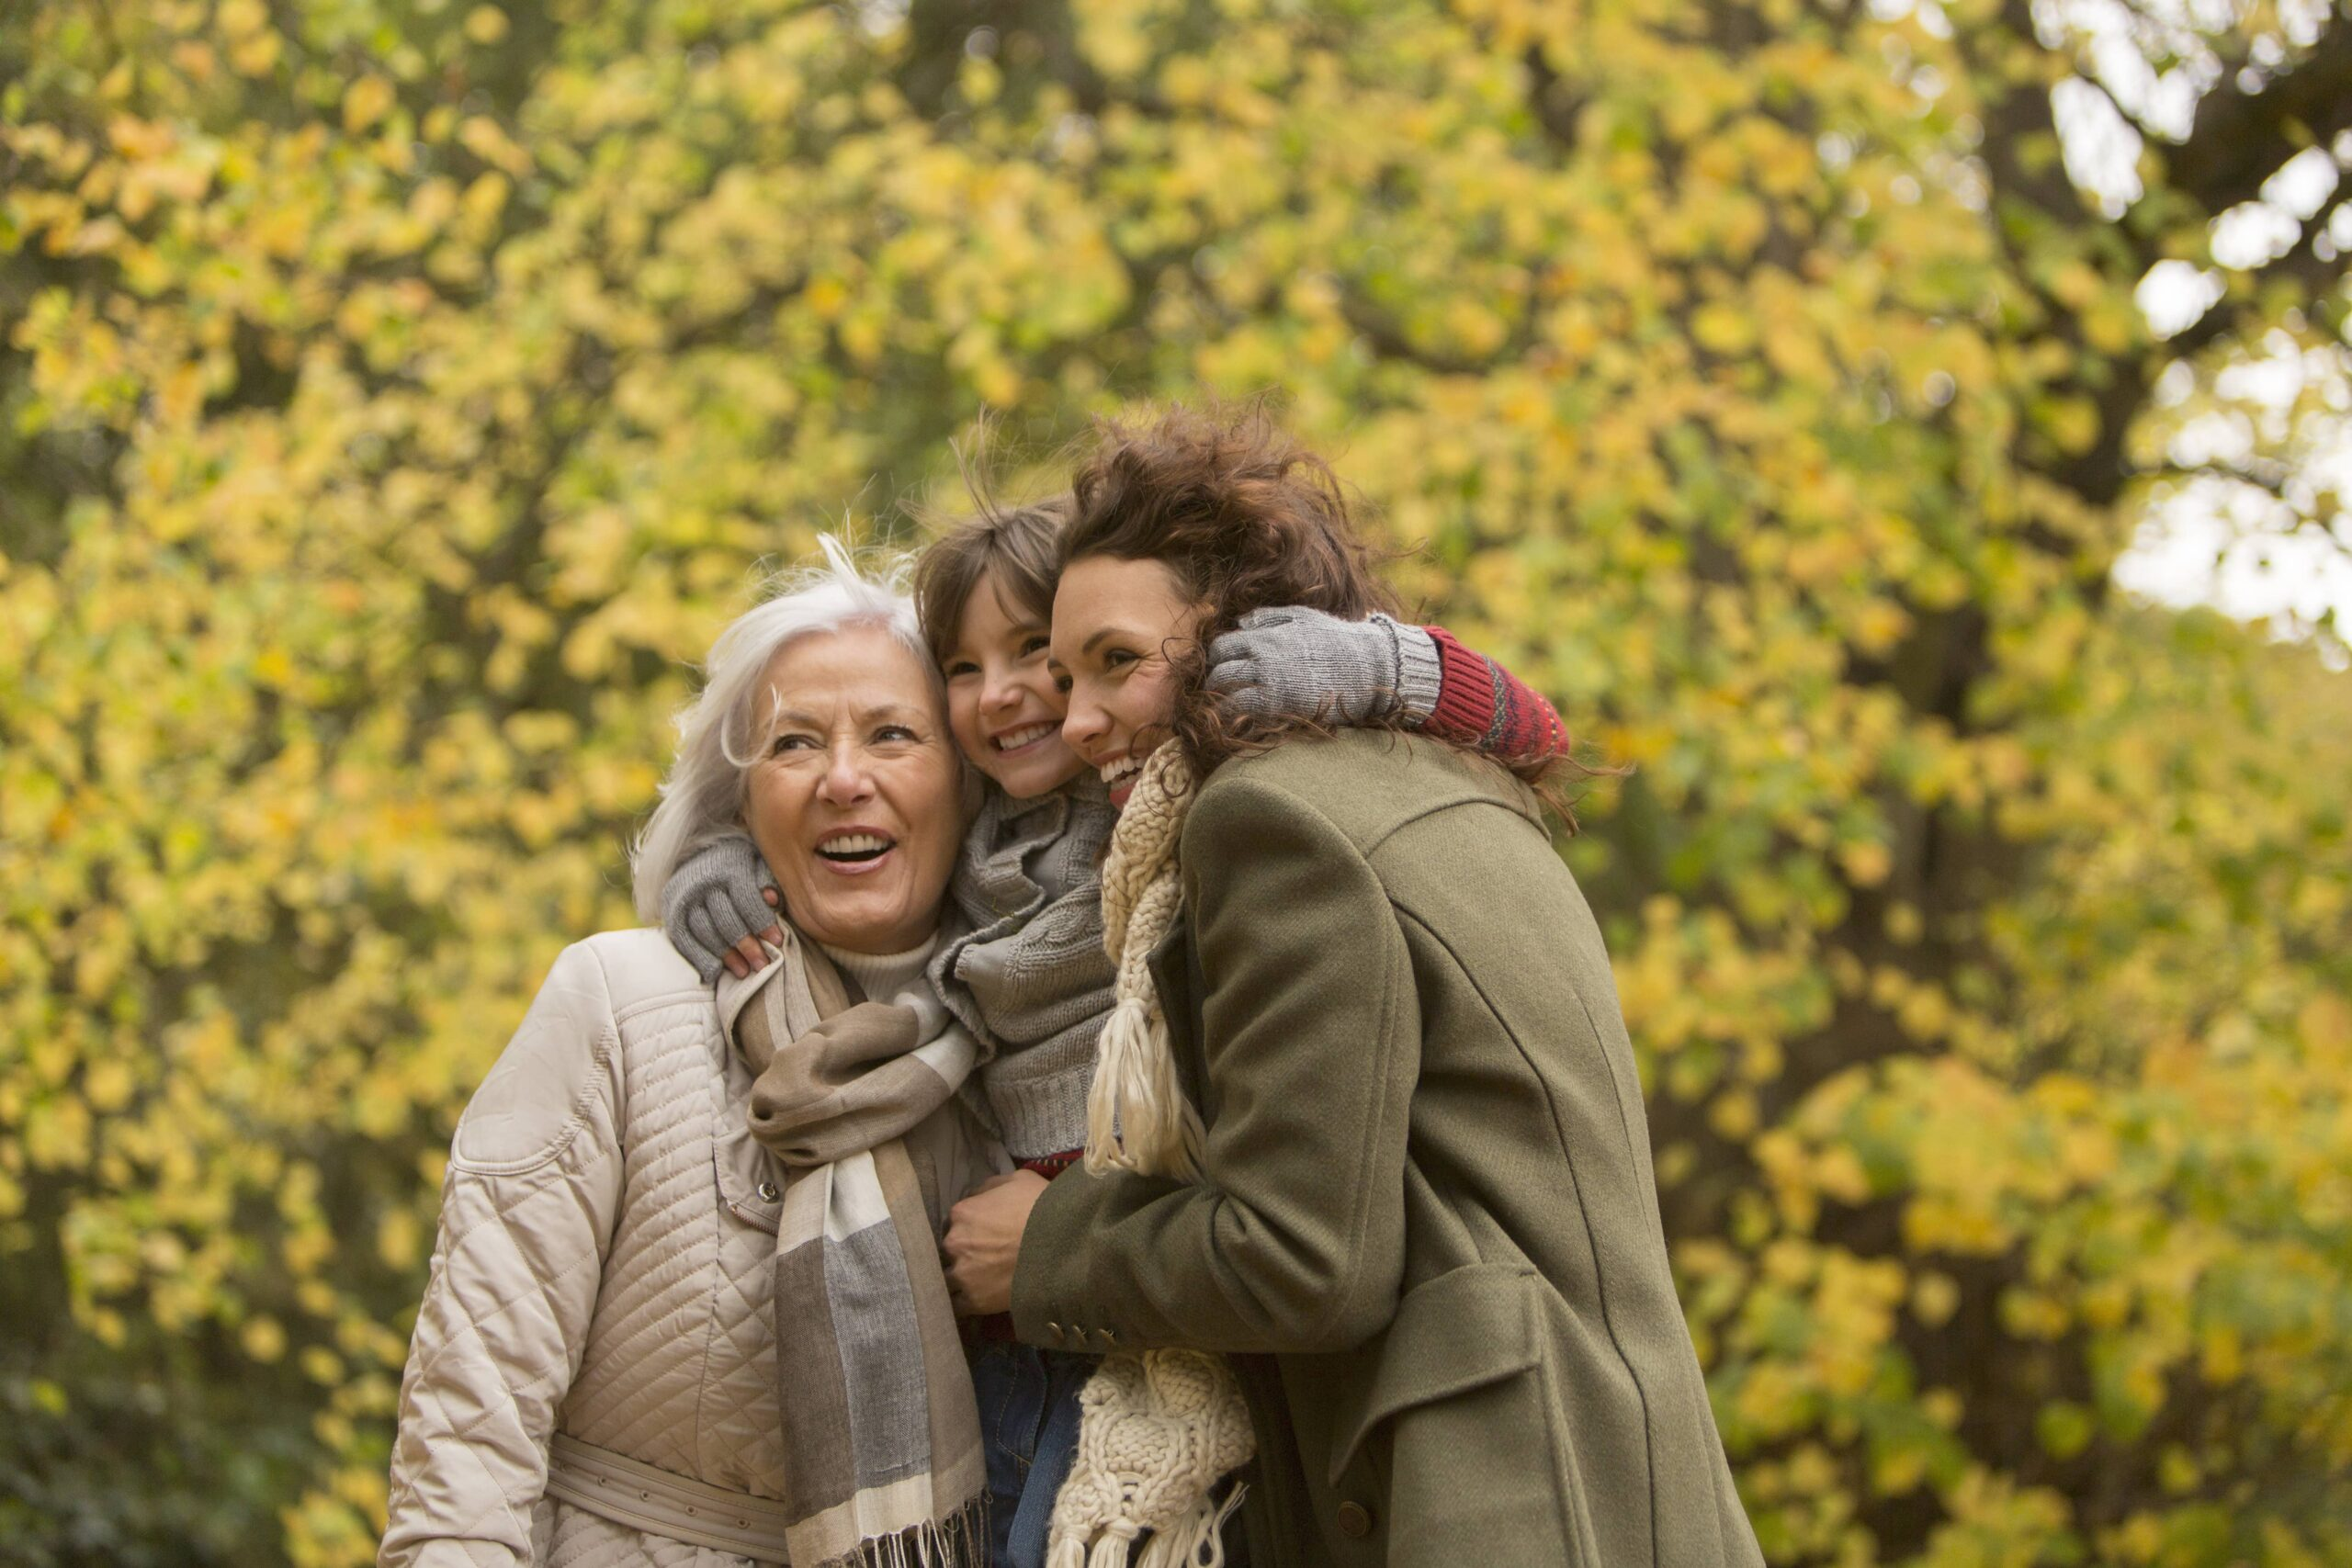 emotional wellbeing and mental health